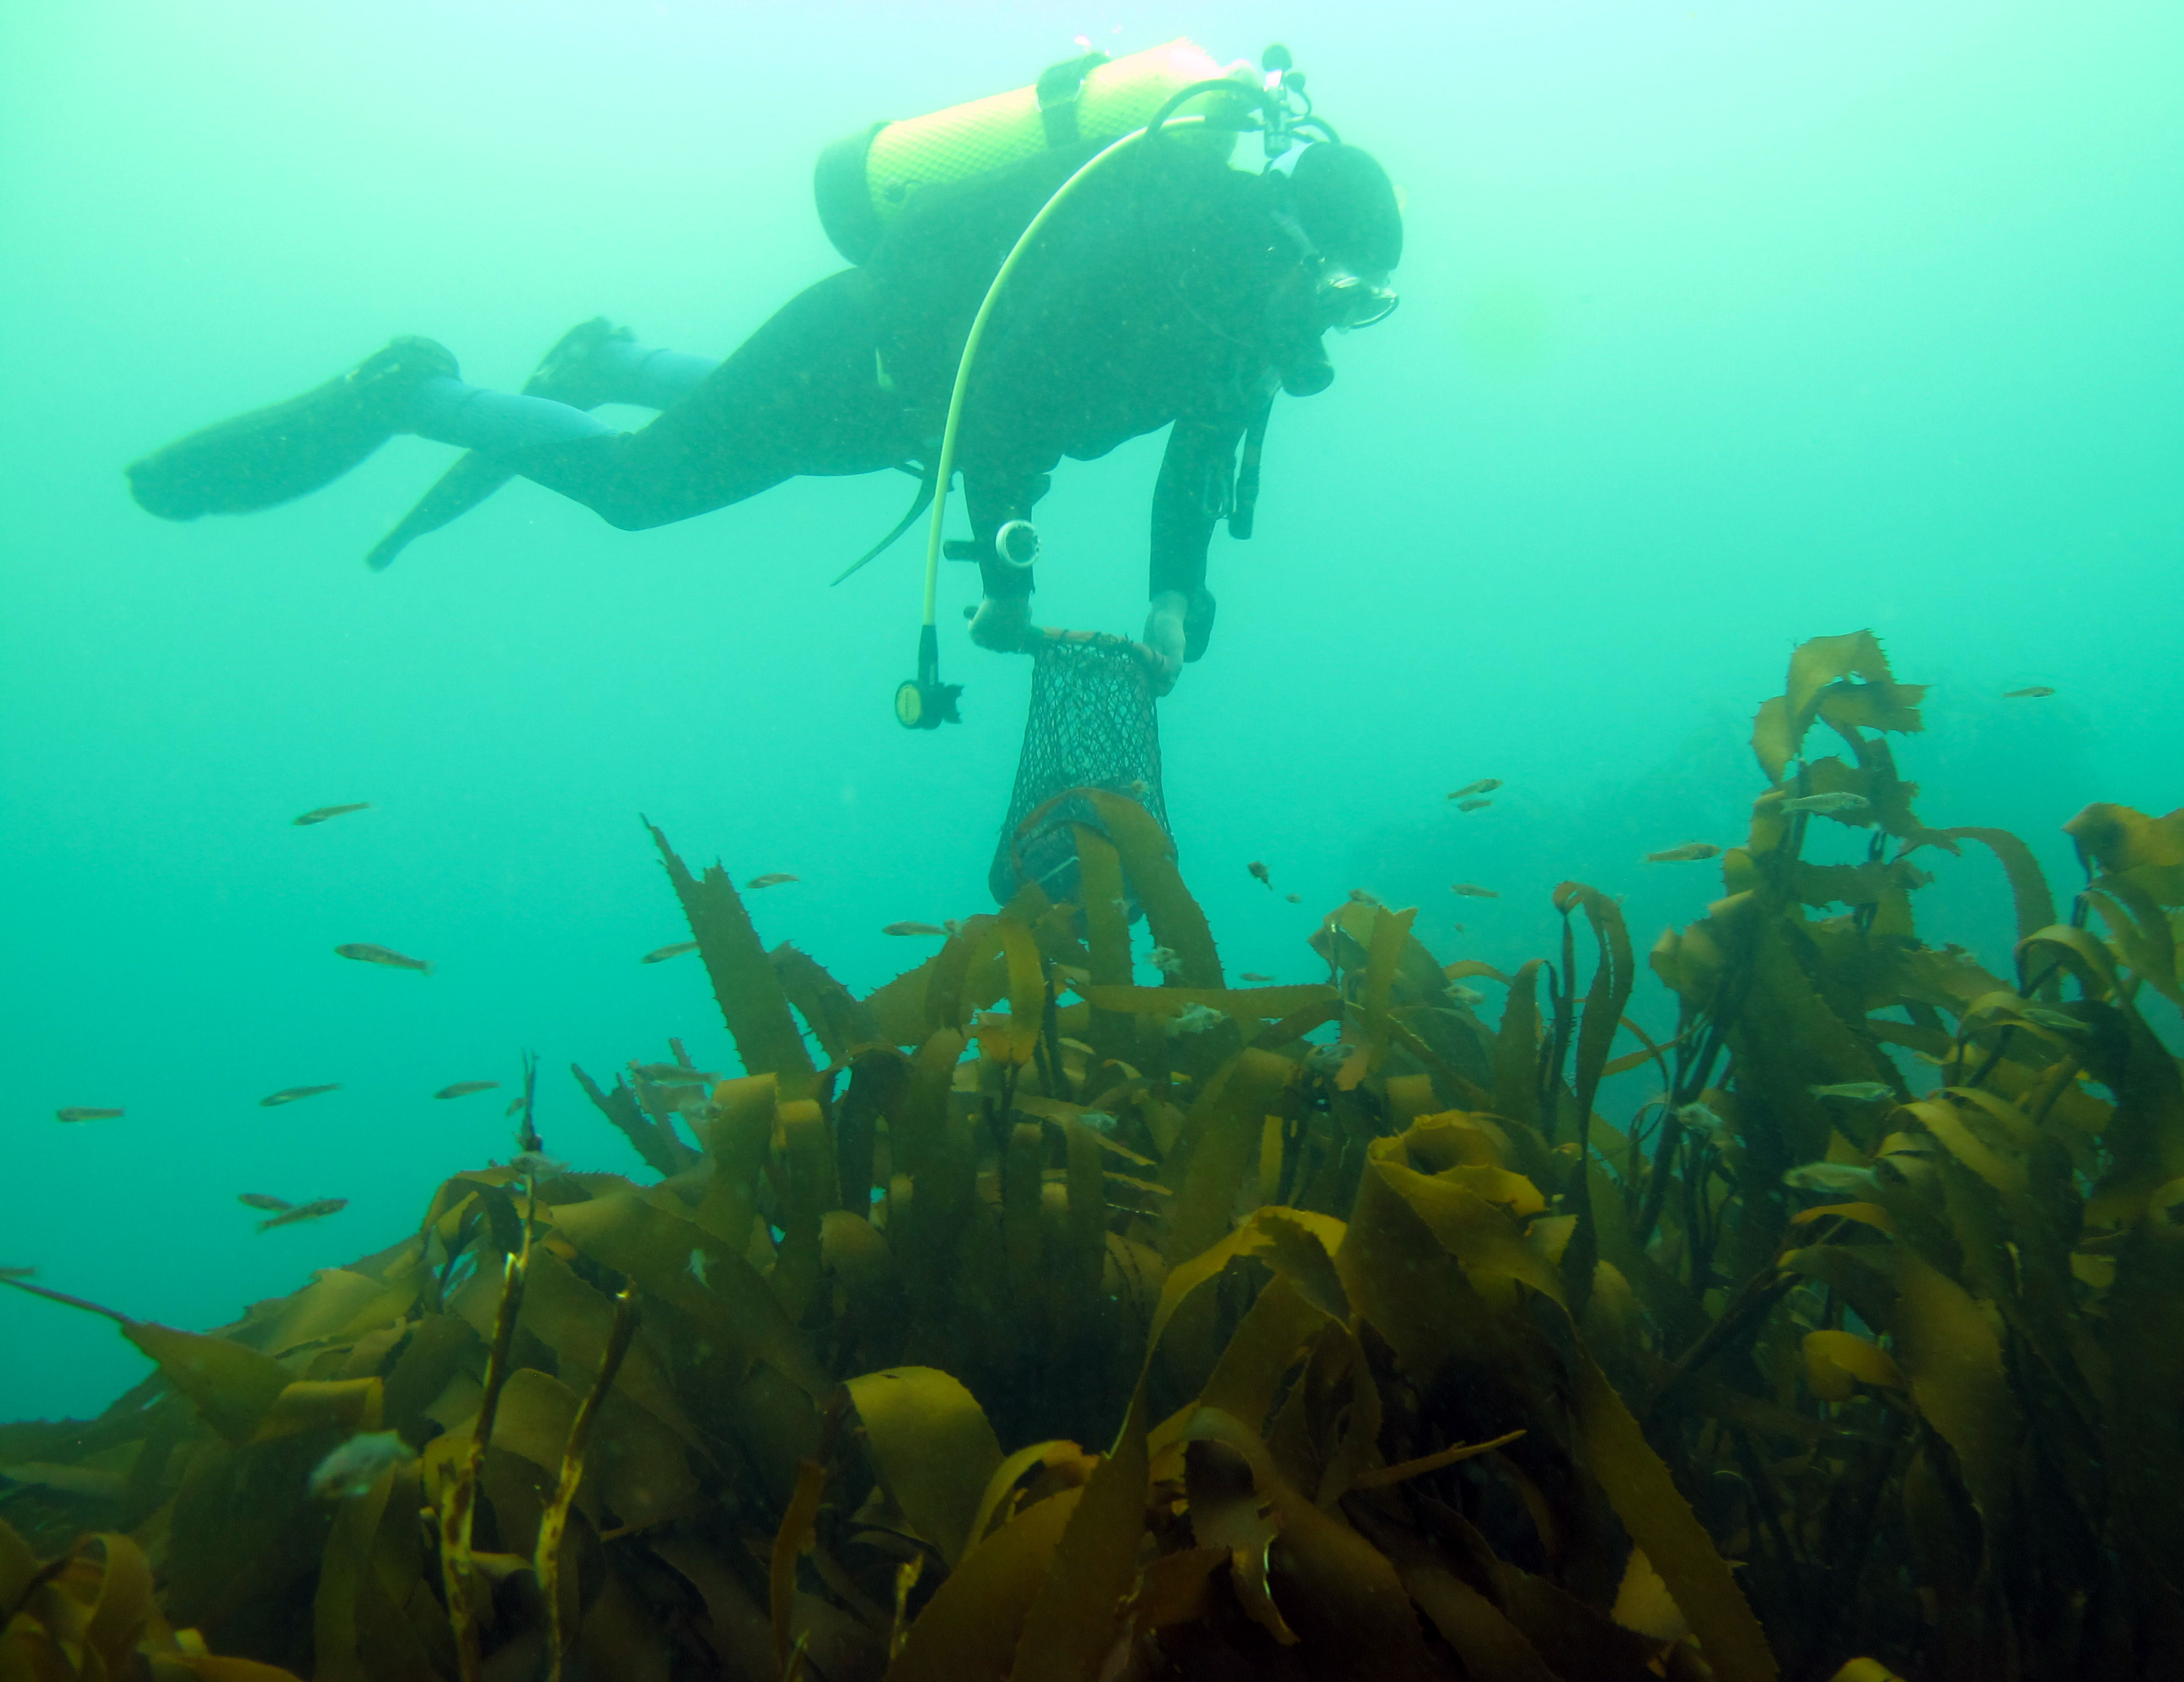 Our class helper, Arley, diving over Lessonia at Bahia Mansa, Osorno, Chile